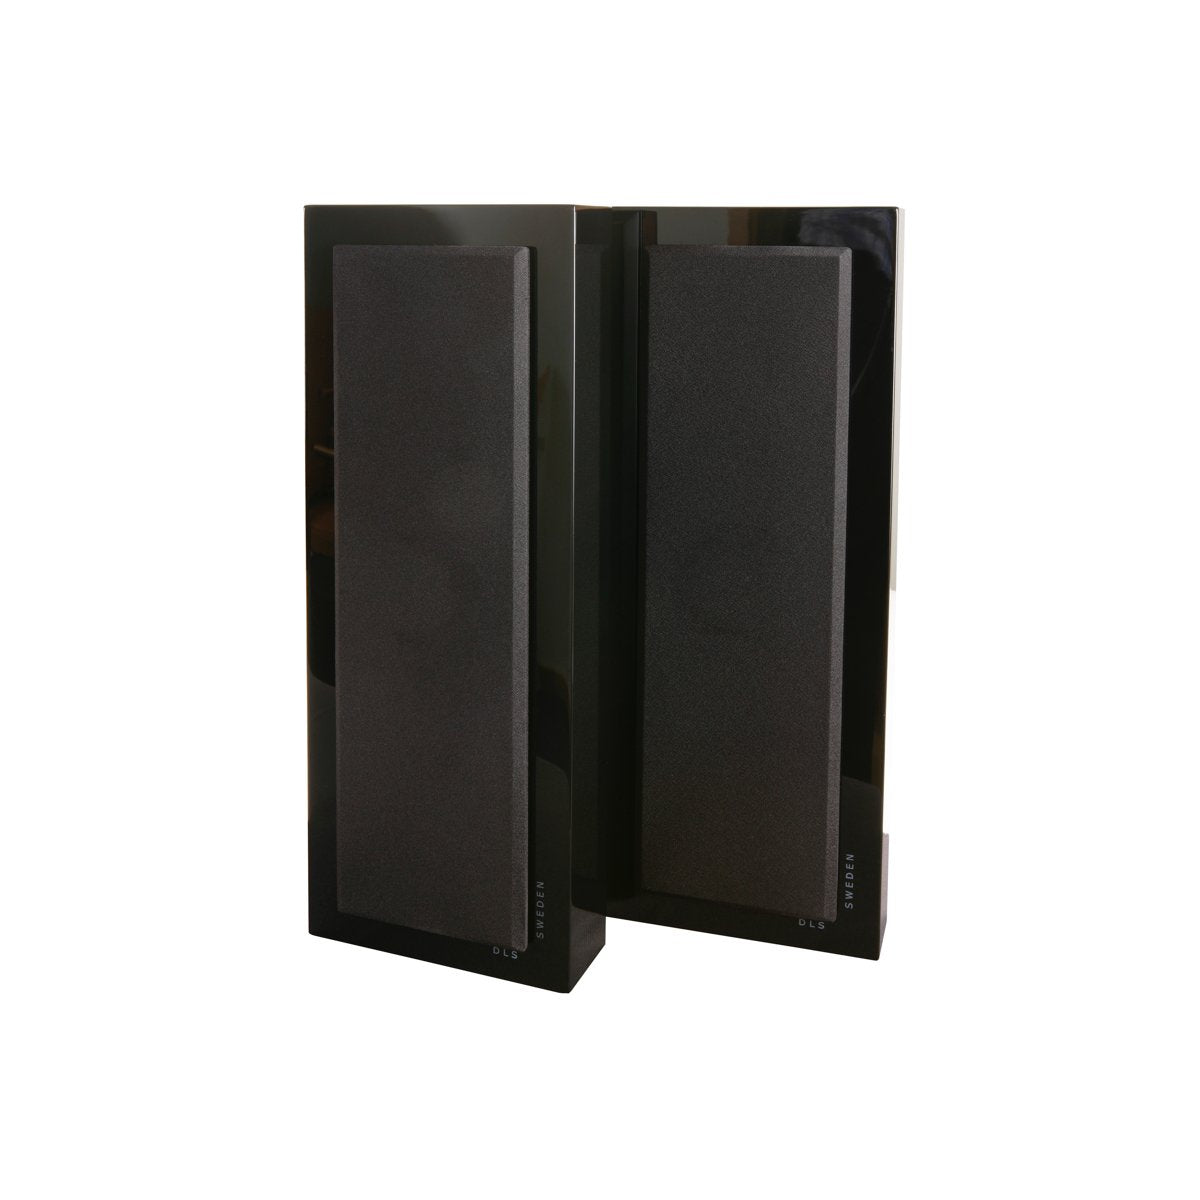 DLS Flatbox Slim Large On wall speaker - Pair - Auratech LLC